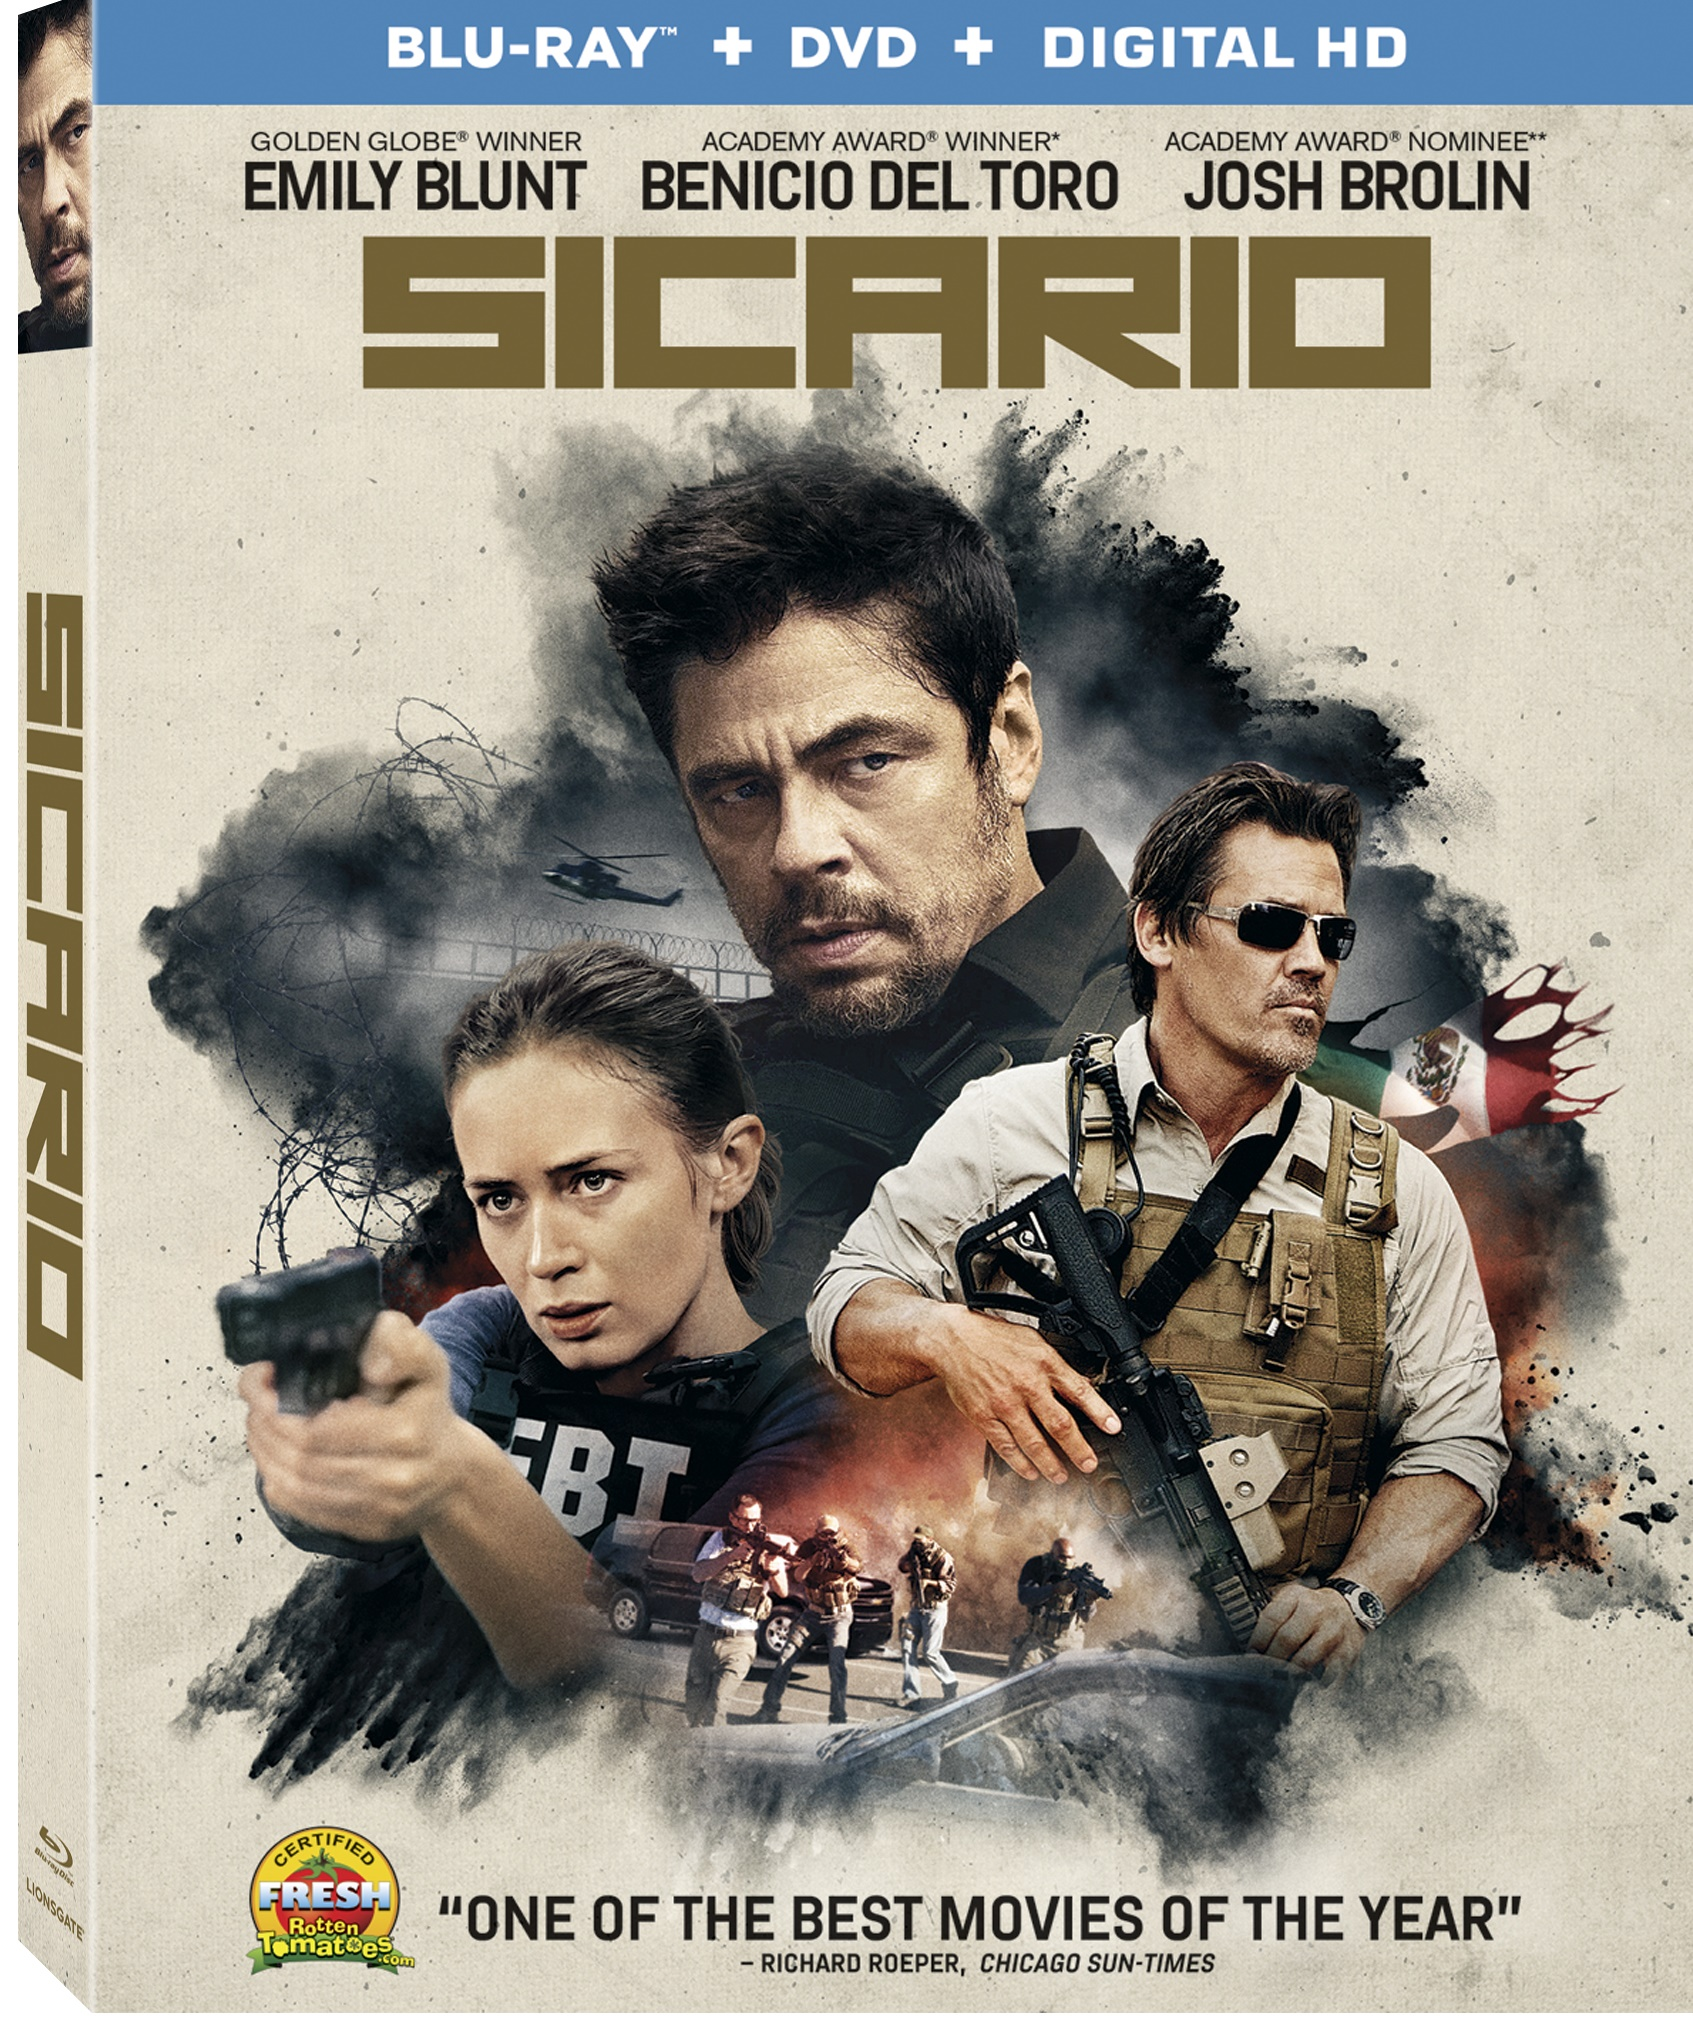 Sicario DVD Review: Drug War Drama Packs a Punch – The Movie